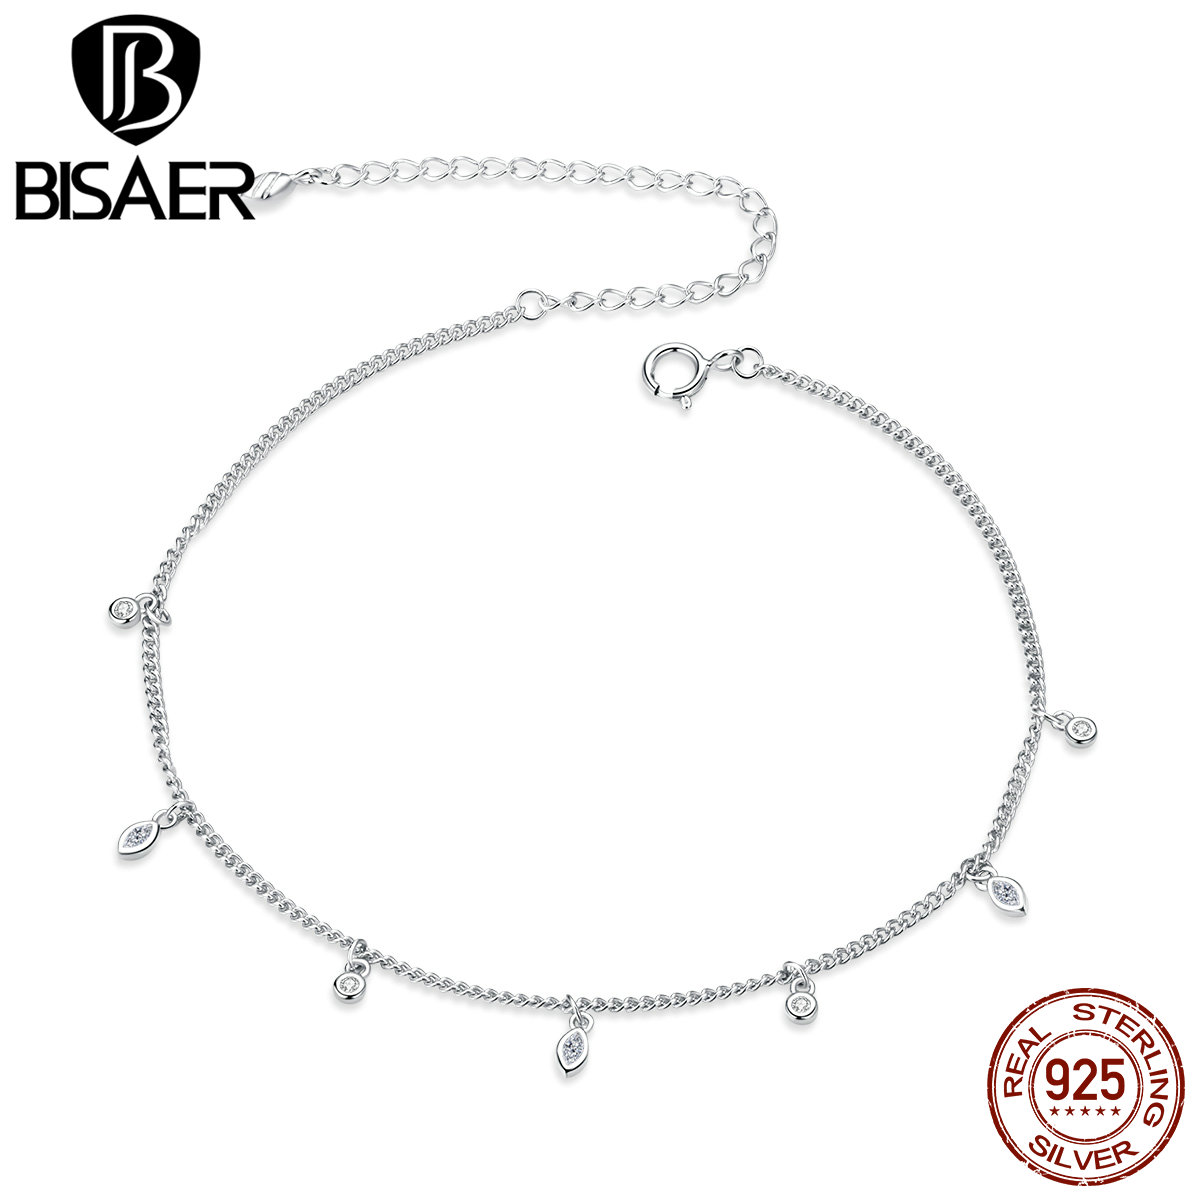 BISAER Anklets 925 Sterling Silver Simple Tassel Sparkling Zircon Chain Anklets For Women Feet Leg Chain Link Fine Jewelry